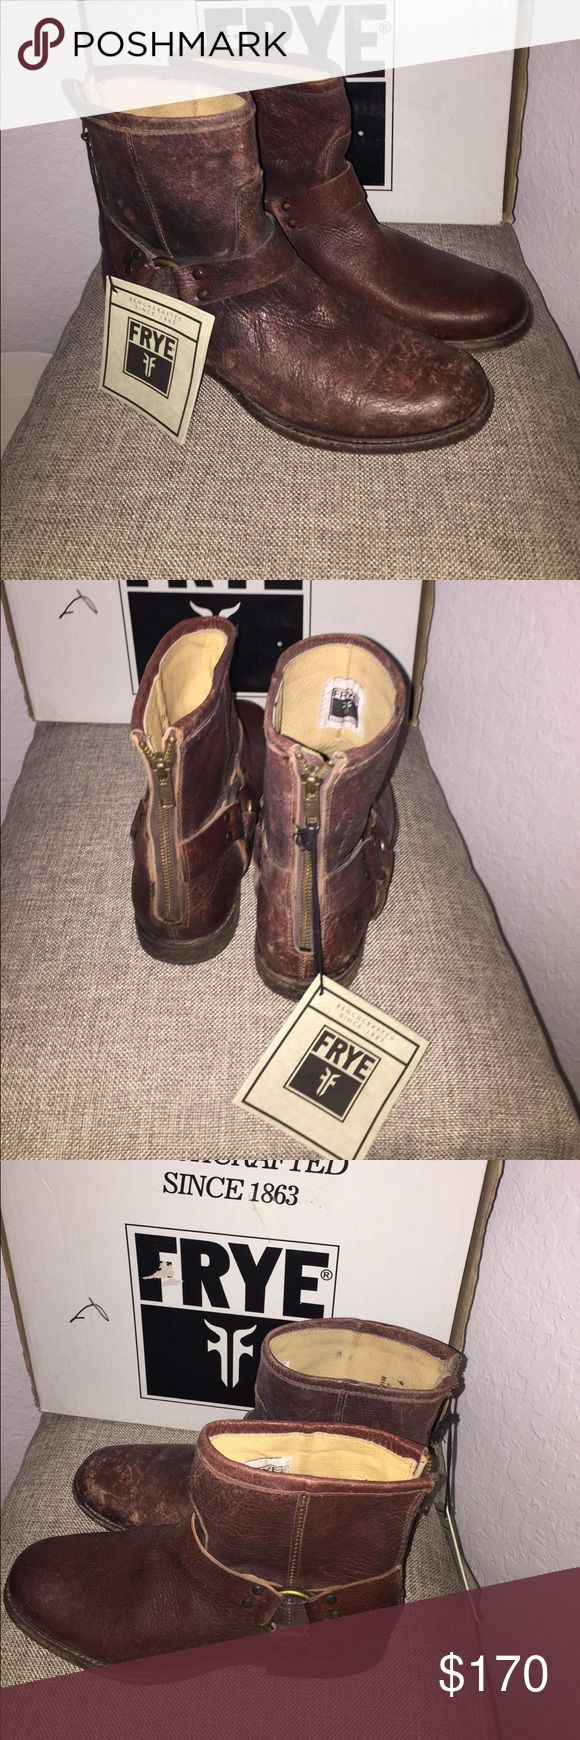 Frye Dark Brown Shoes were on the display Frye Shoes Ankle Boots & Booties